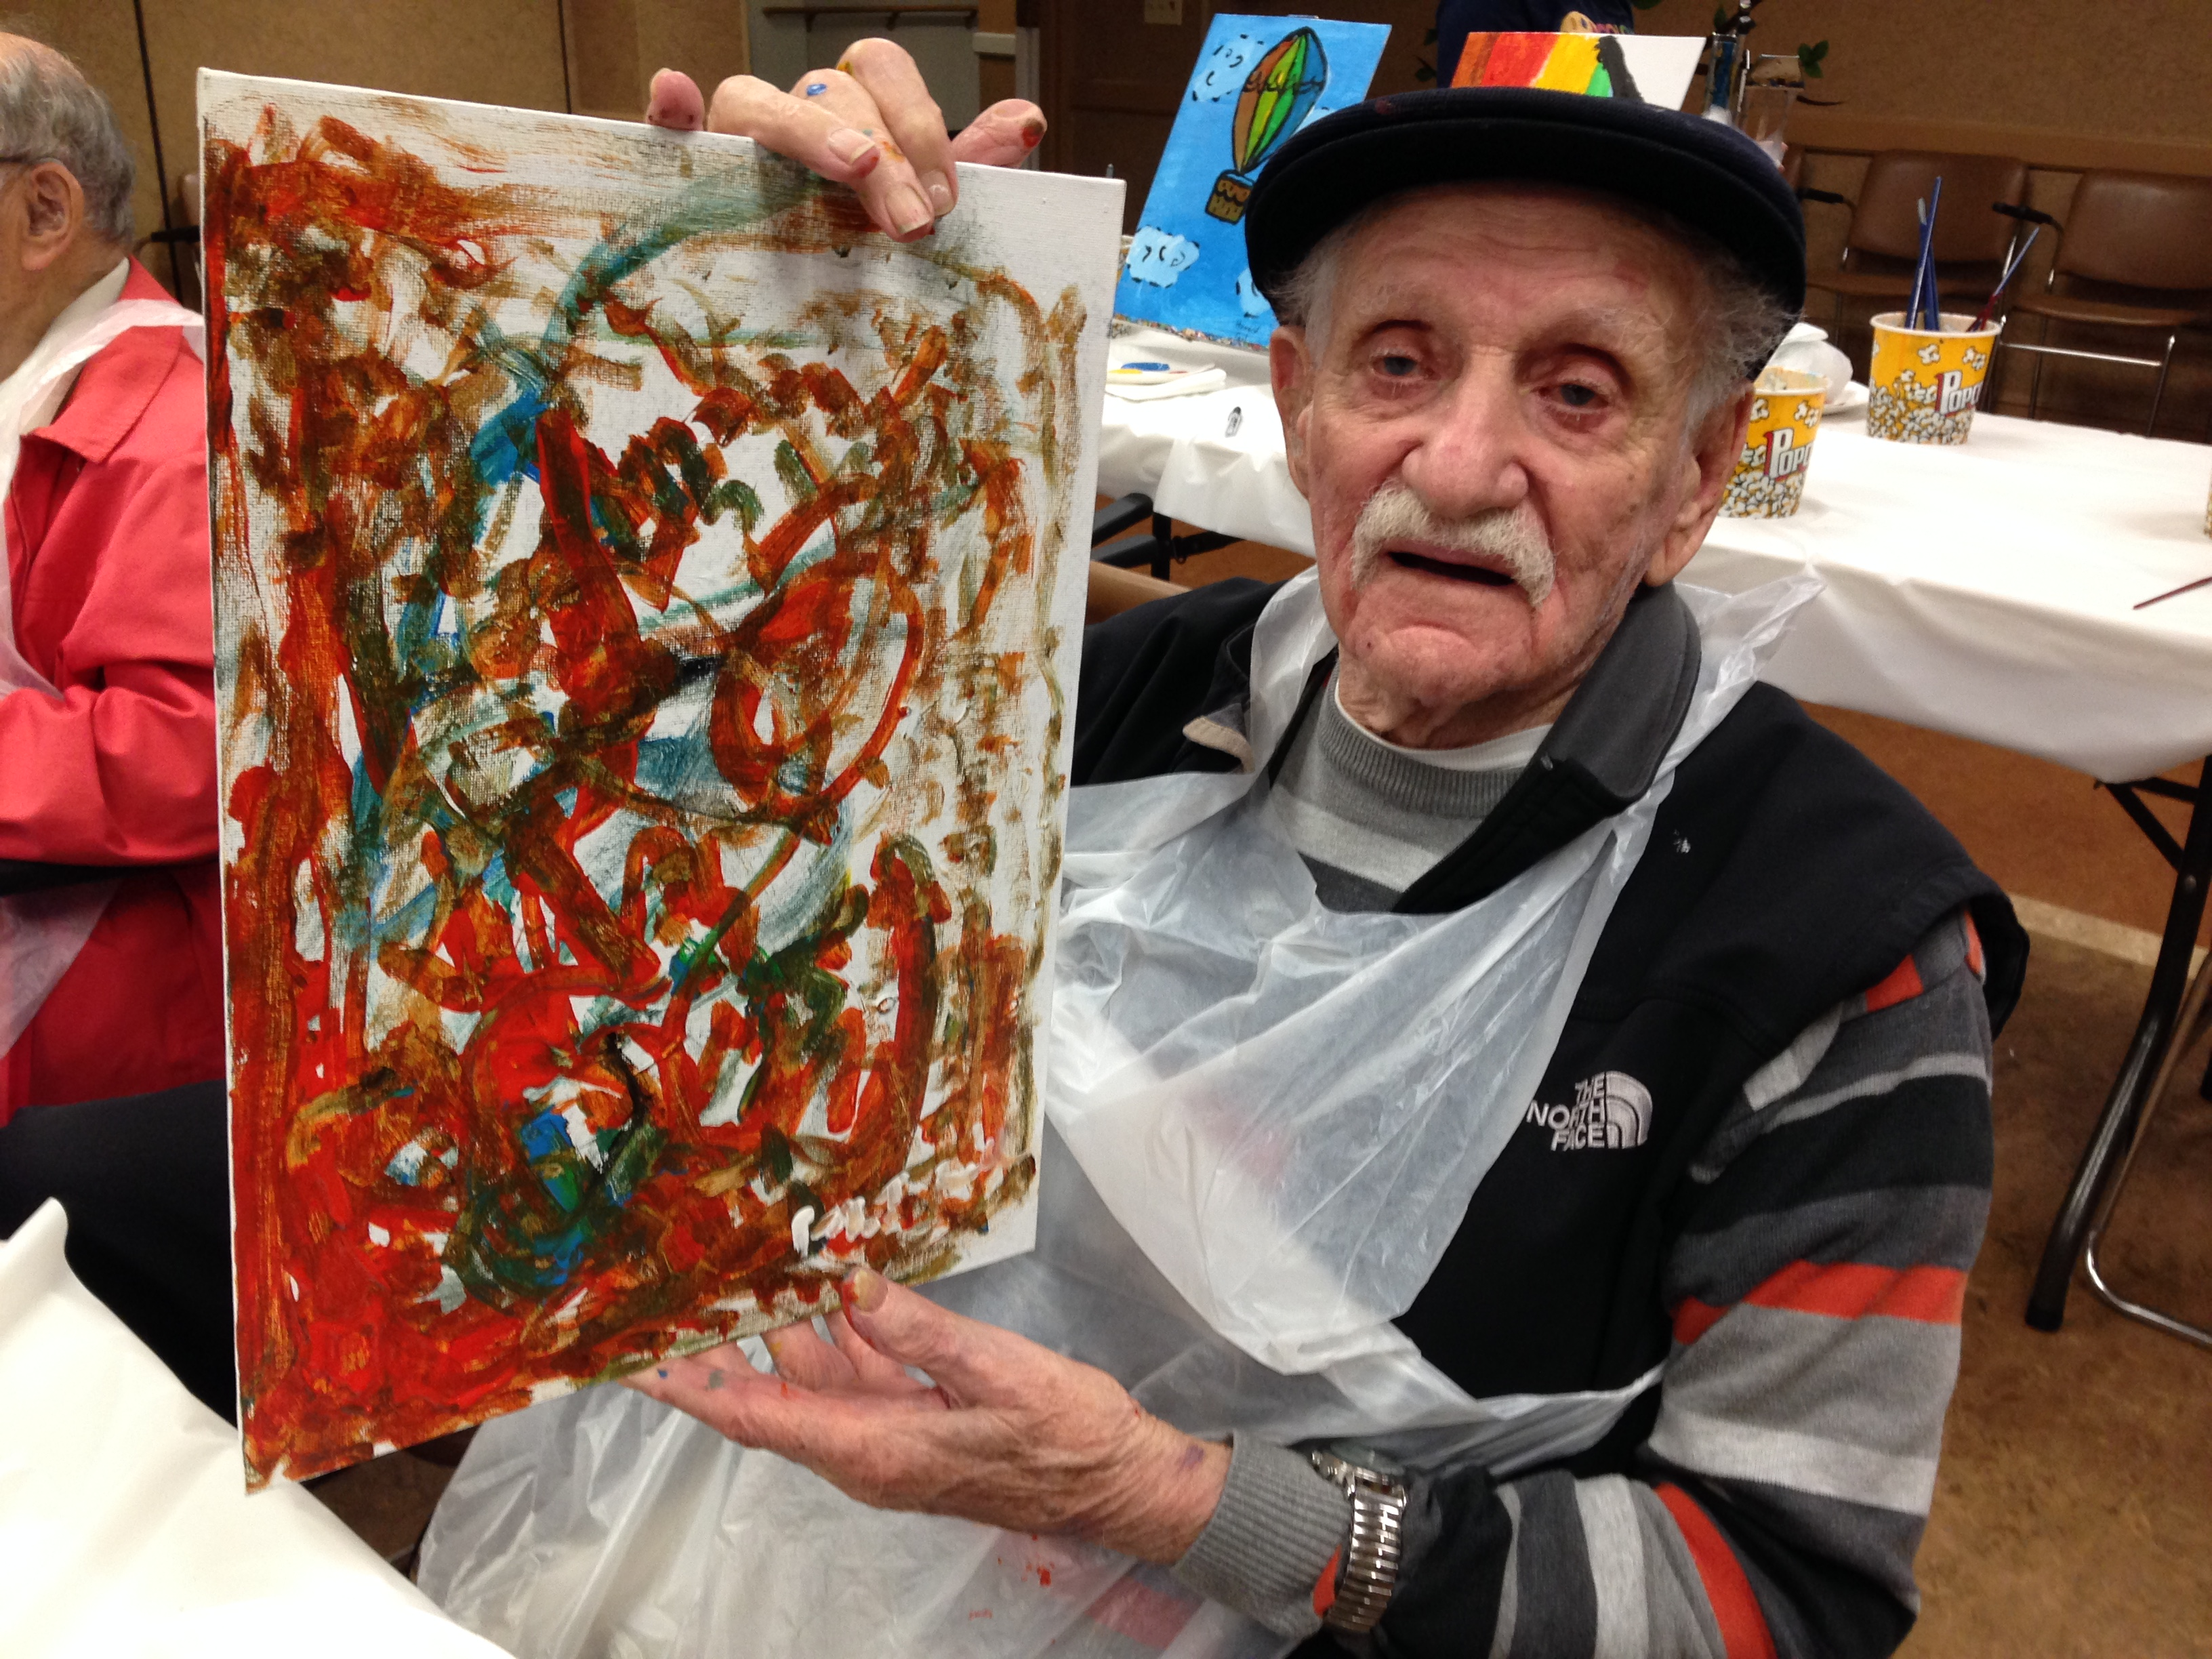 stone gardens painting party 6/8/16